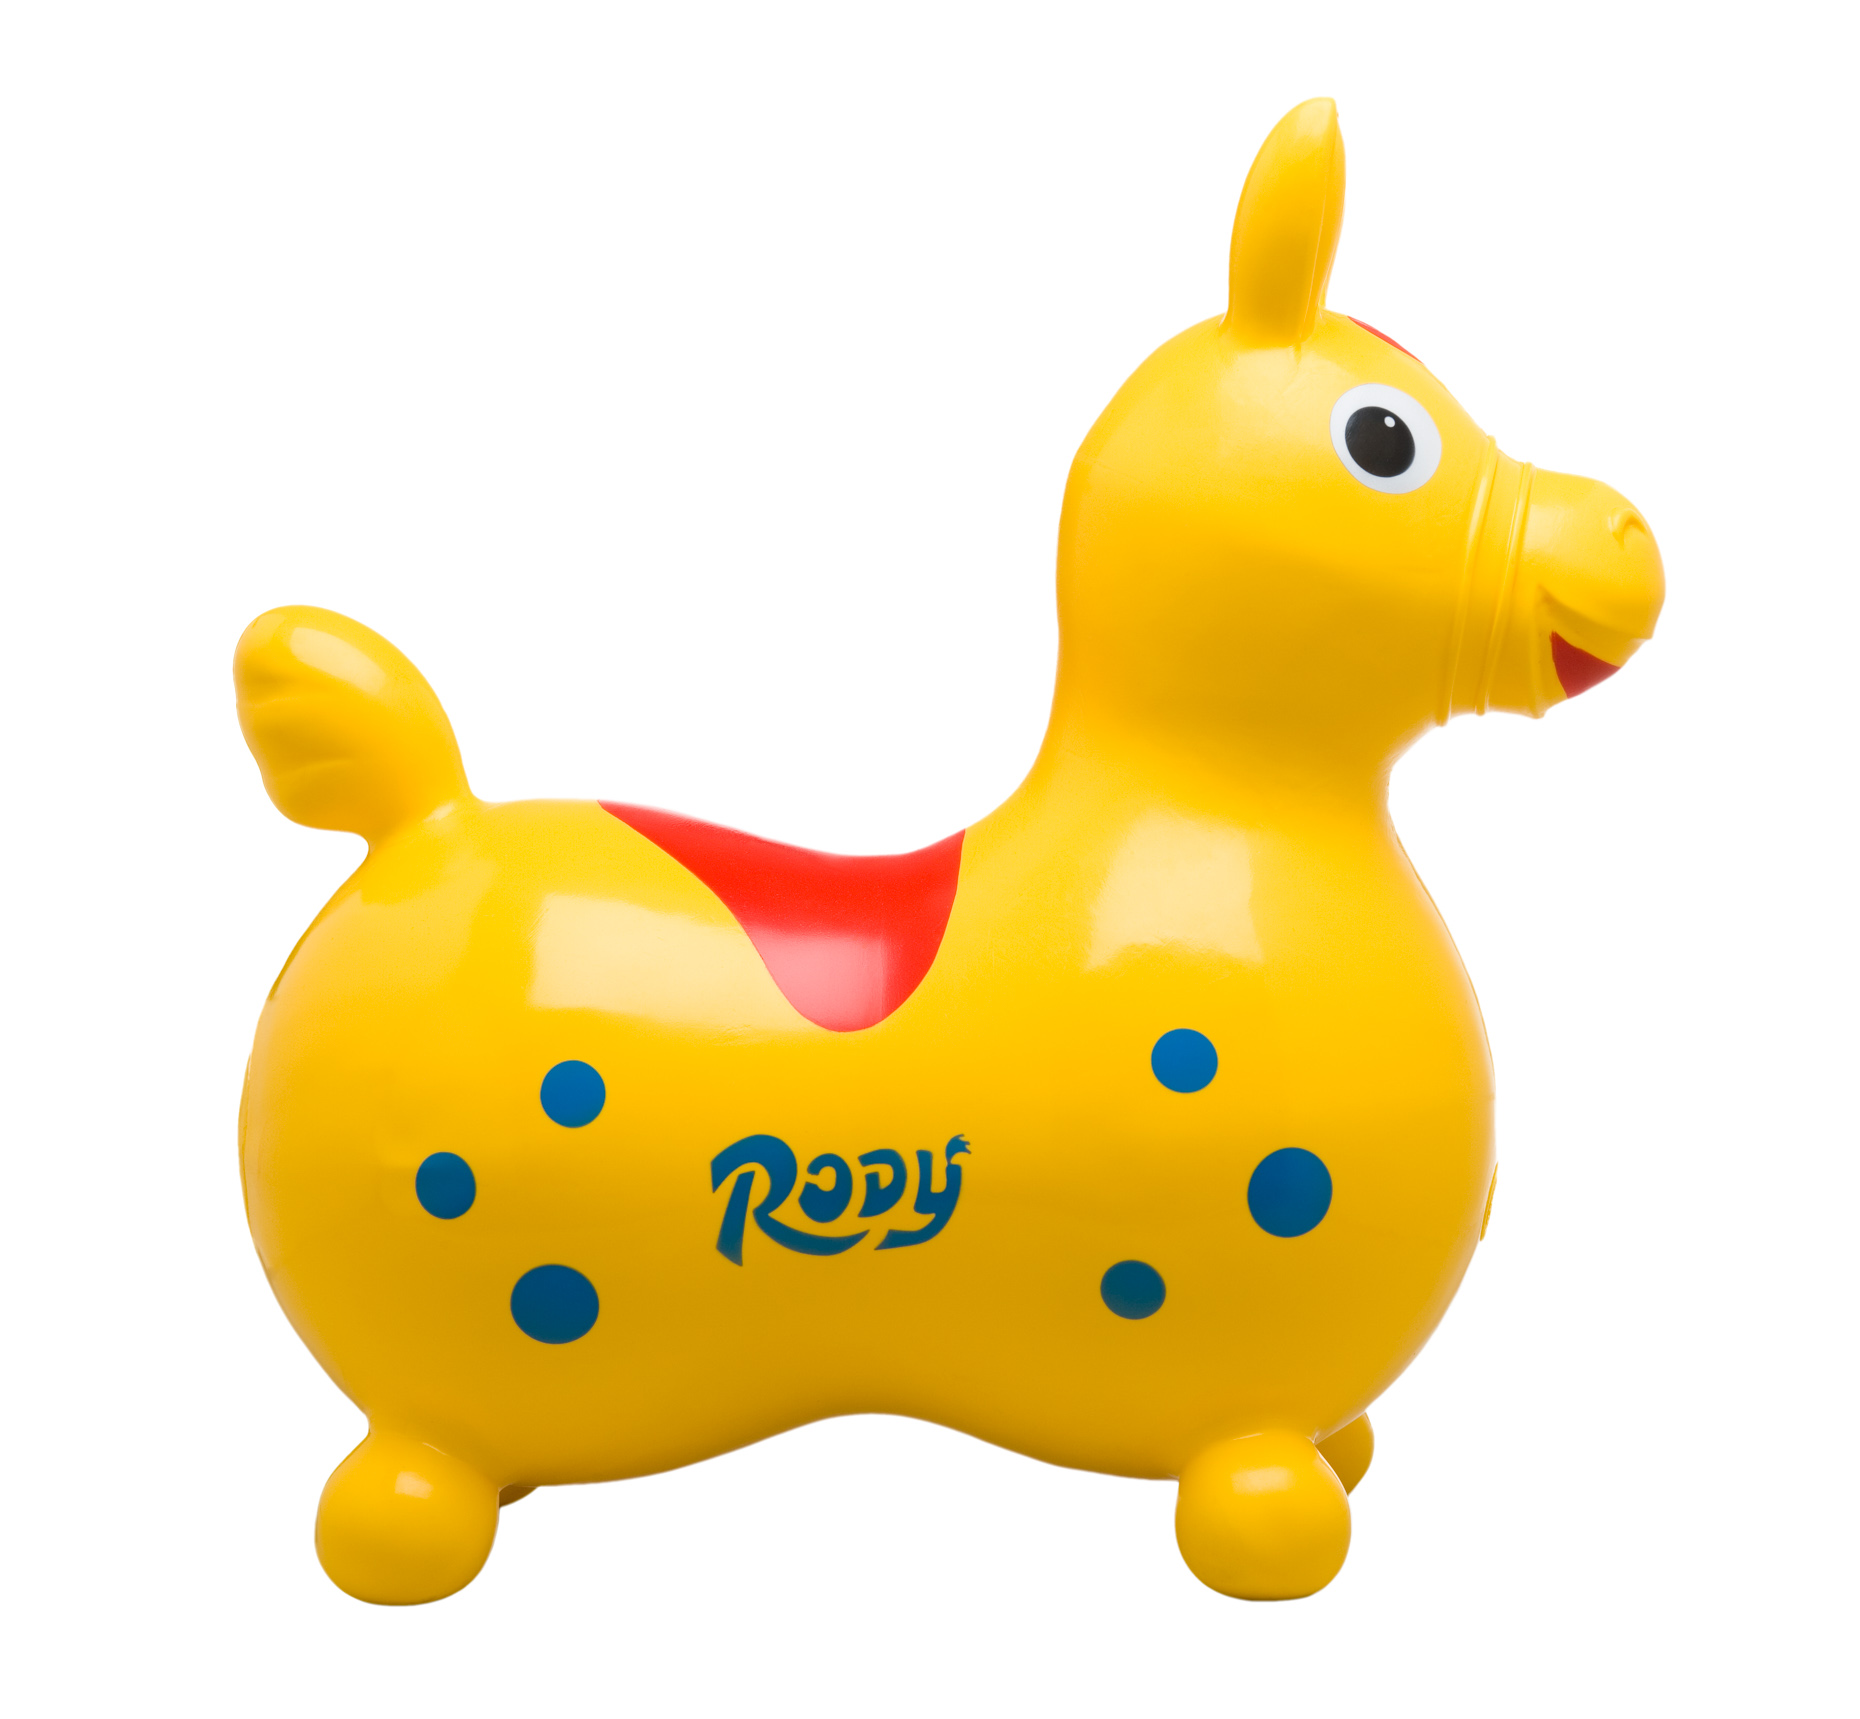 Yellow_Rody_S5E9879